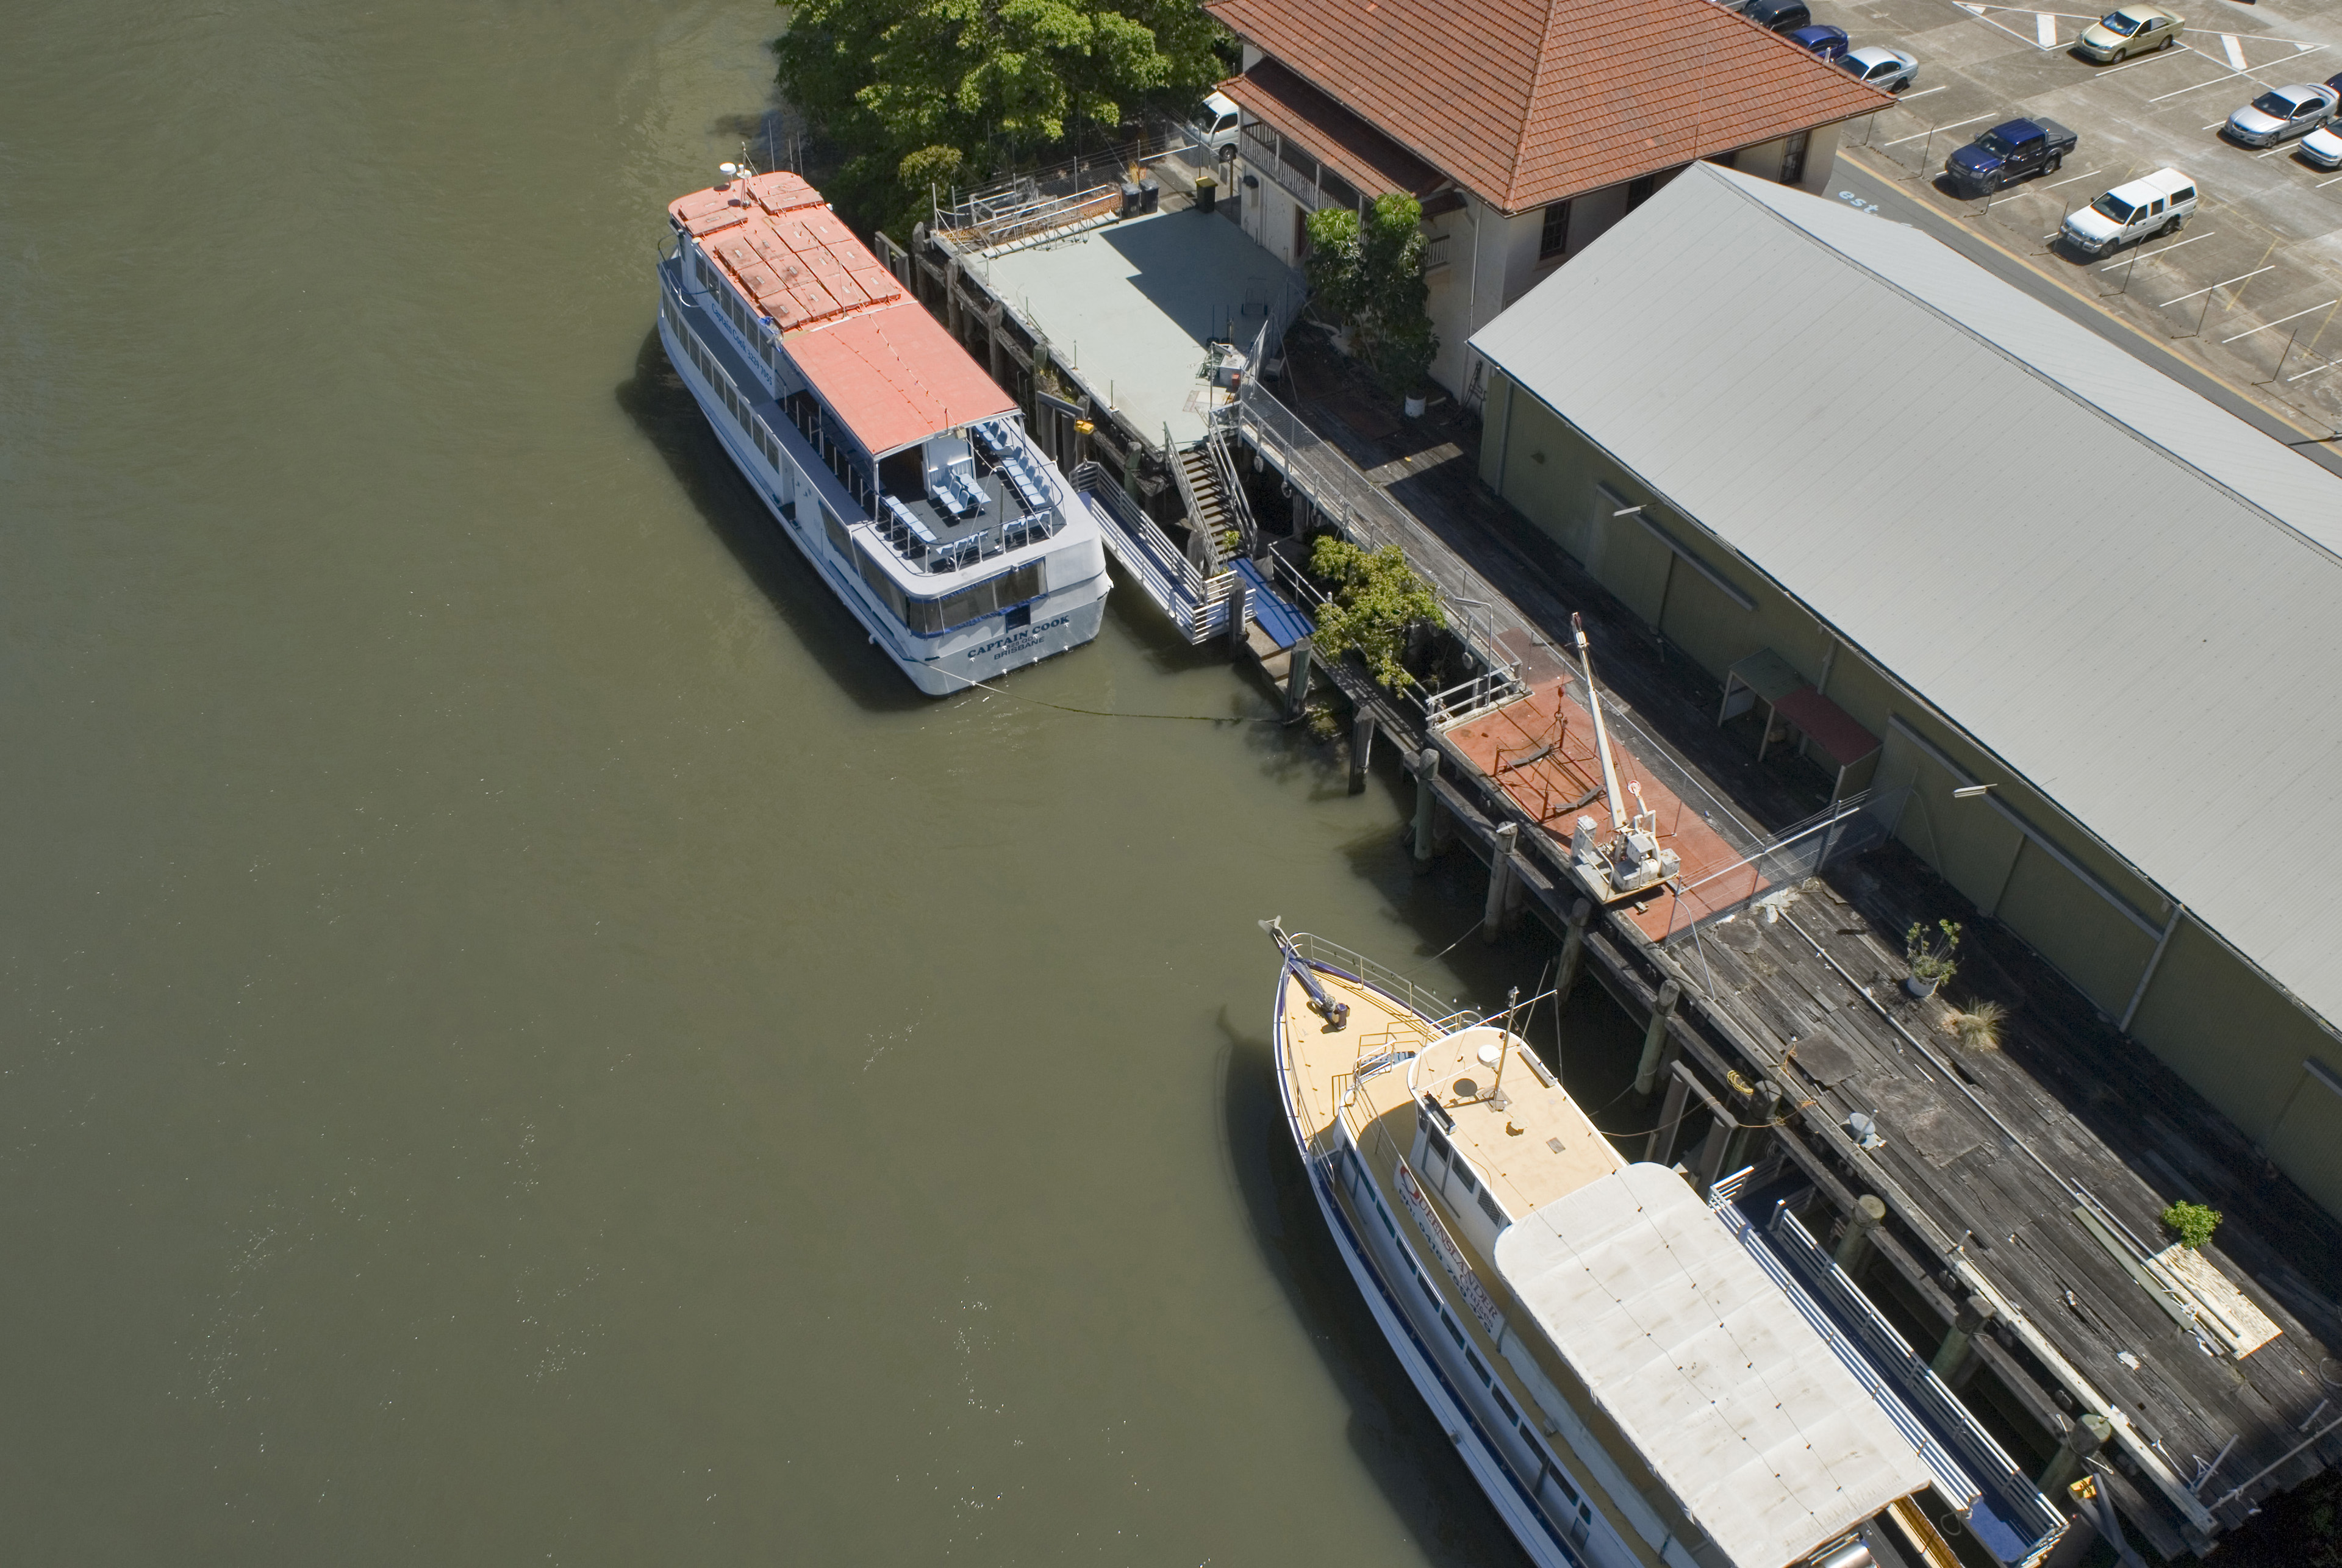 Overhead View of River Boats Docked at Ferry Terminal Buildings on Rivers Edge with Parking Lot in Background